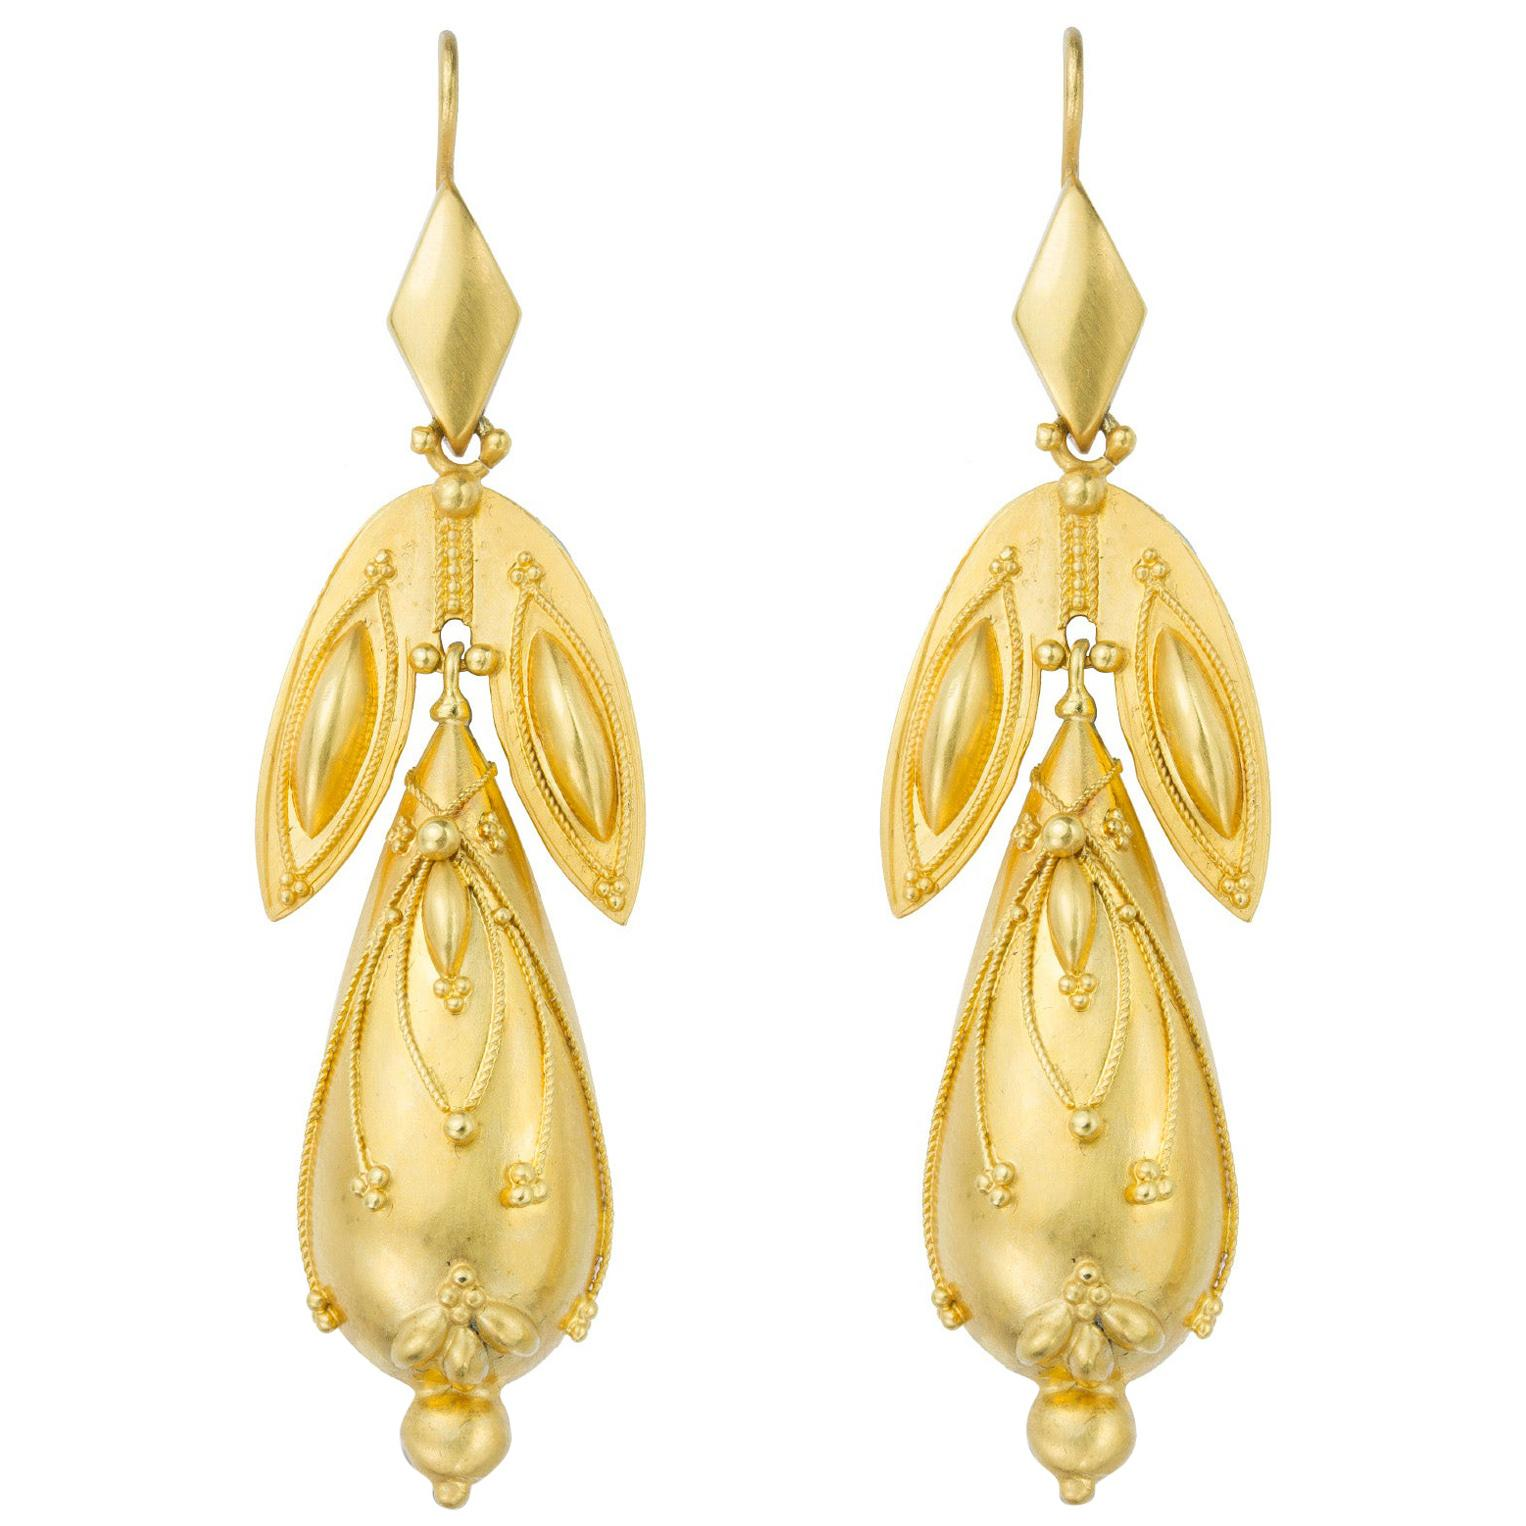 Pair of Victorian Gold Drop Earrings